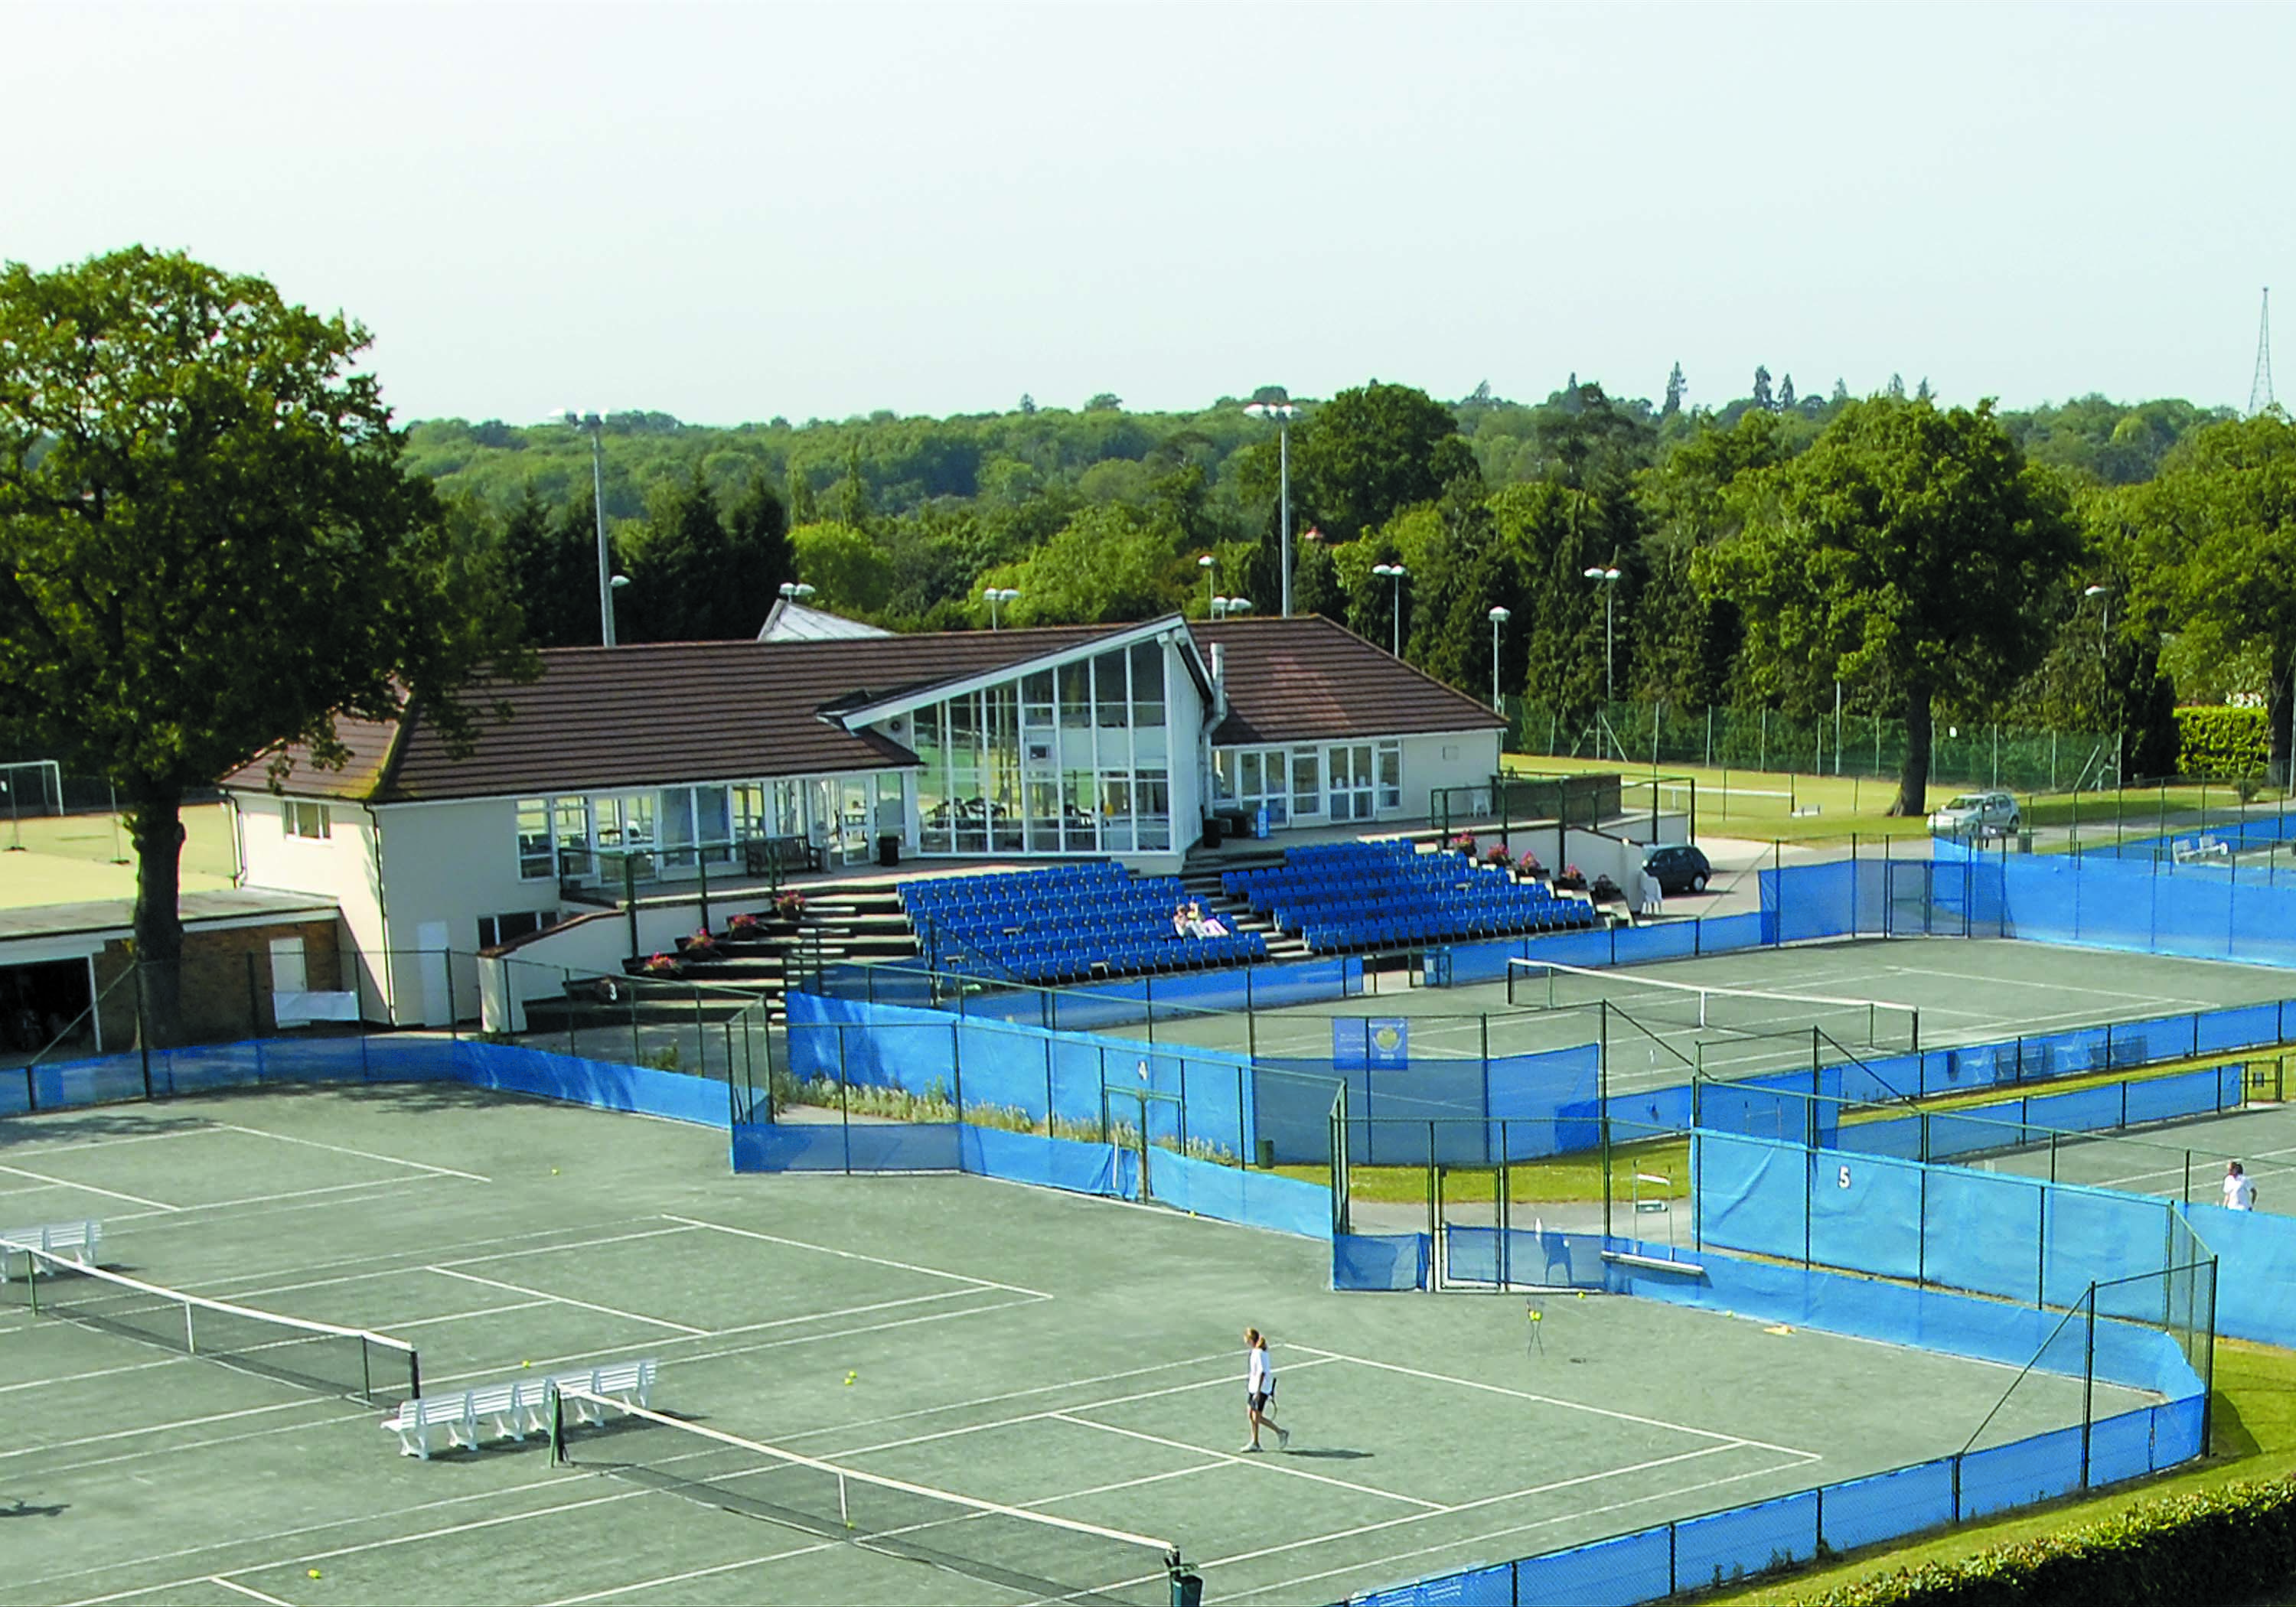 Qw - tennis centre